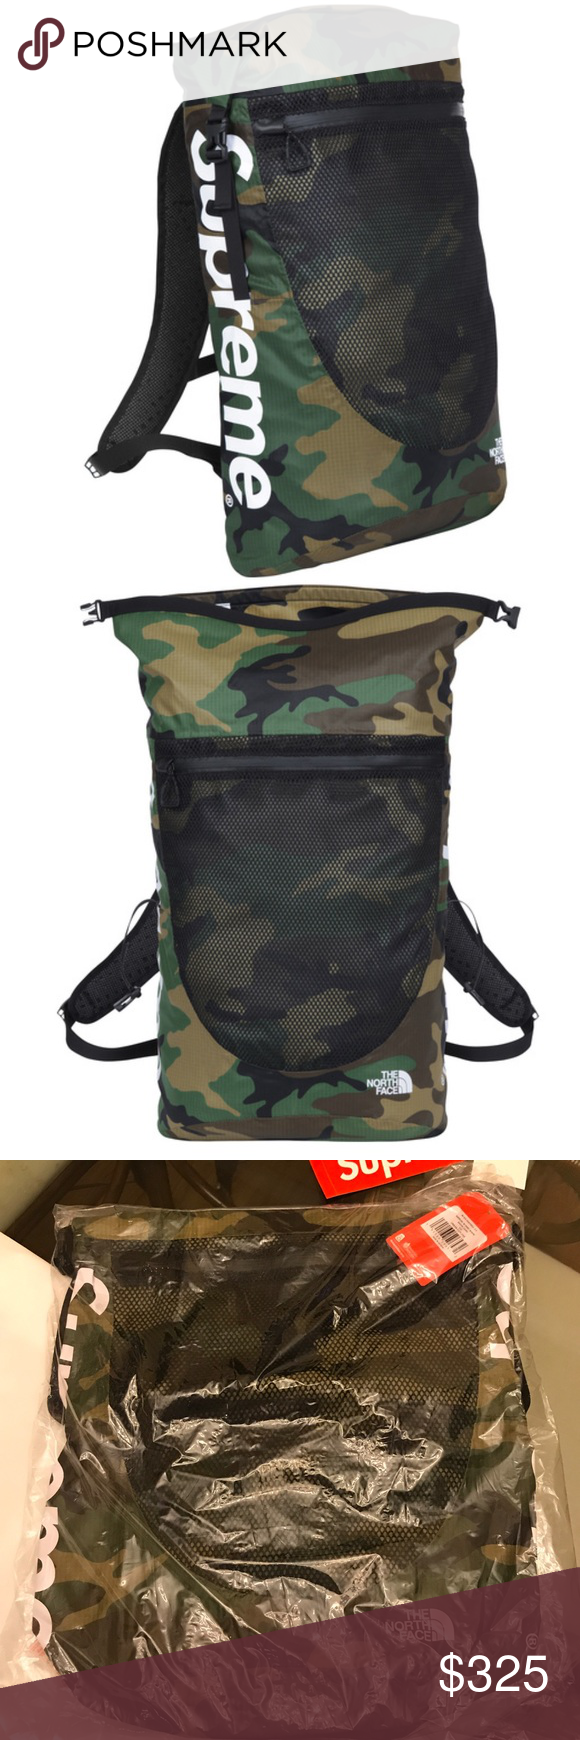 7f57be8476 NWT Supreme SS17 North Face Woodland Camo Backpack Supreme The North Face  Waterproof Backpack 210D double ripstop nylon with double side PU coating.